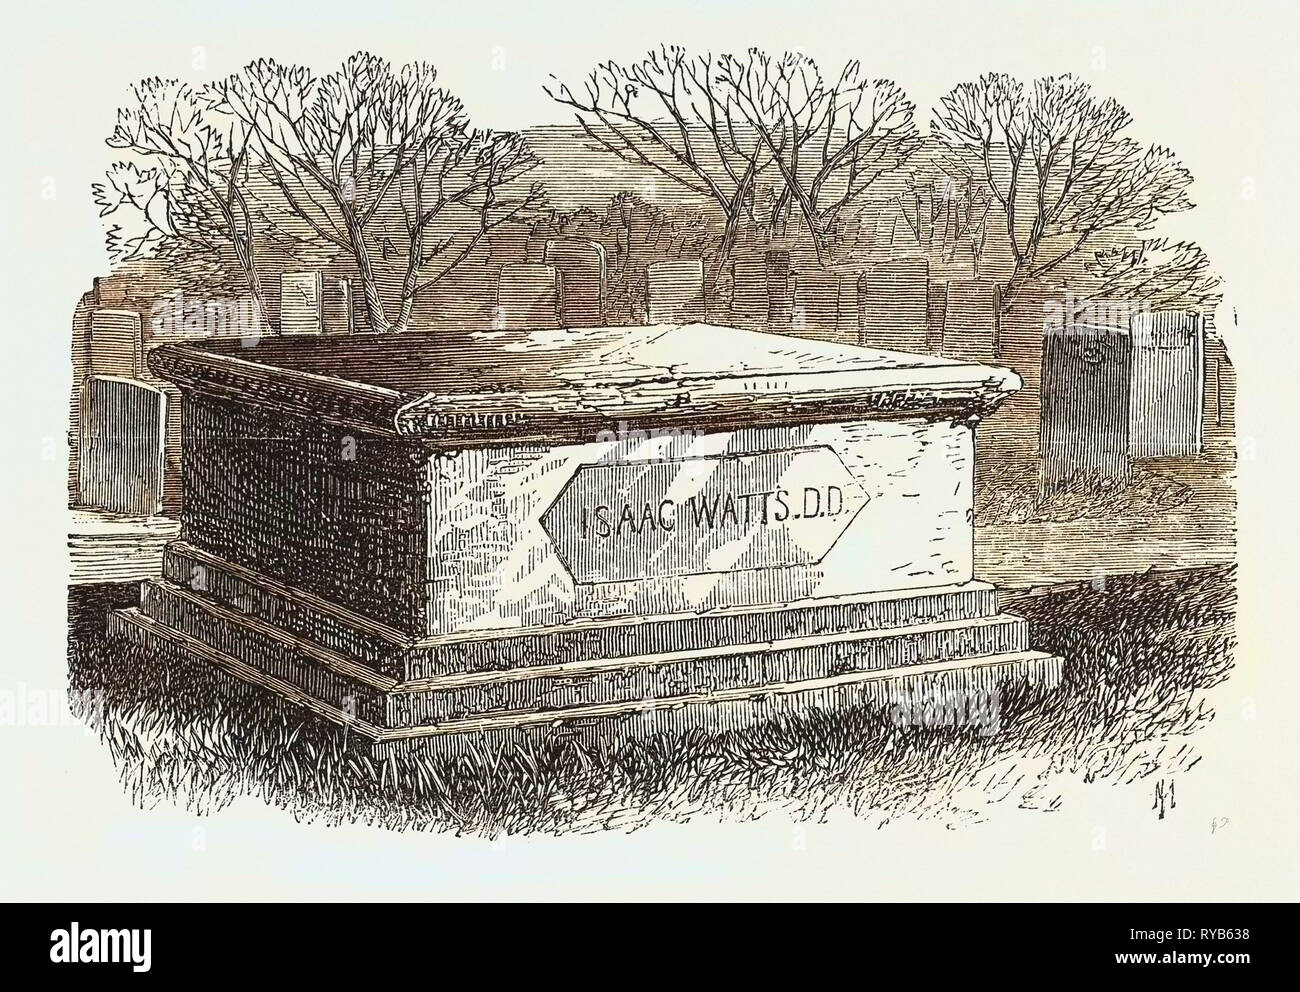 Old Tombs in Bunhill Fields Cemetery: Dr. Isaac Watts's Tomb, 1869 - Stock Image